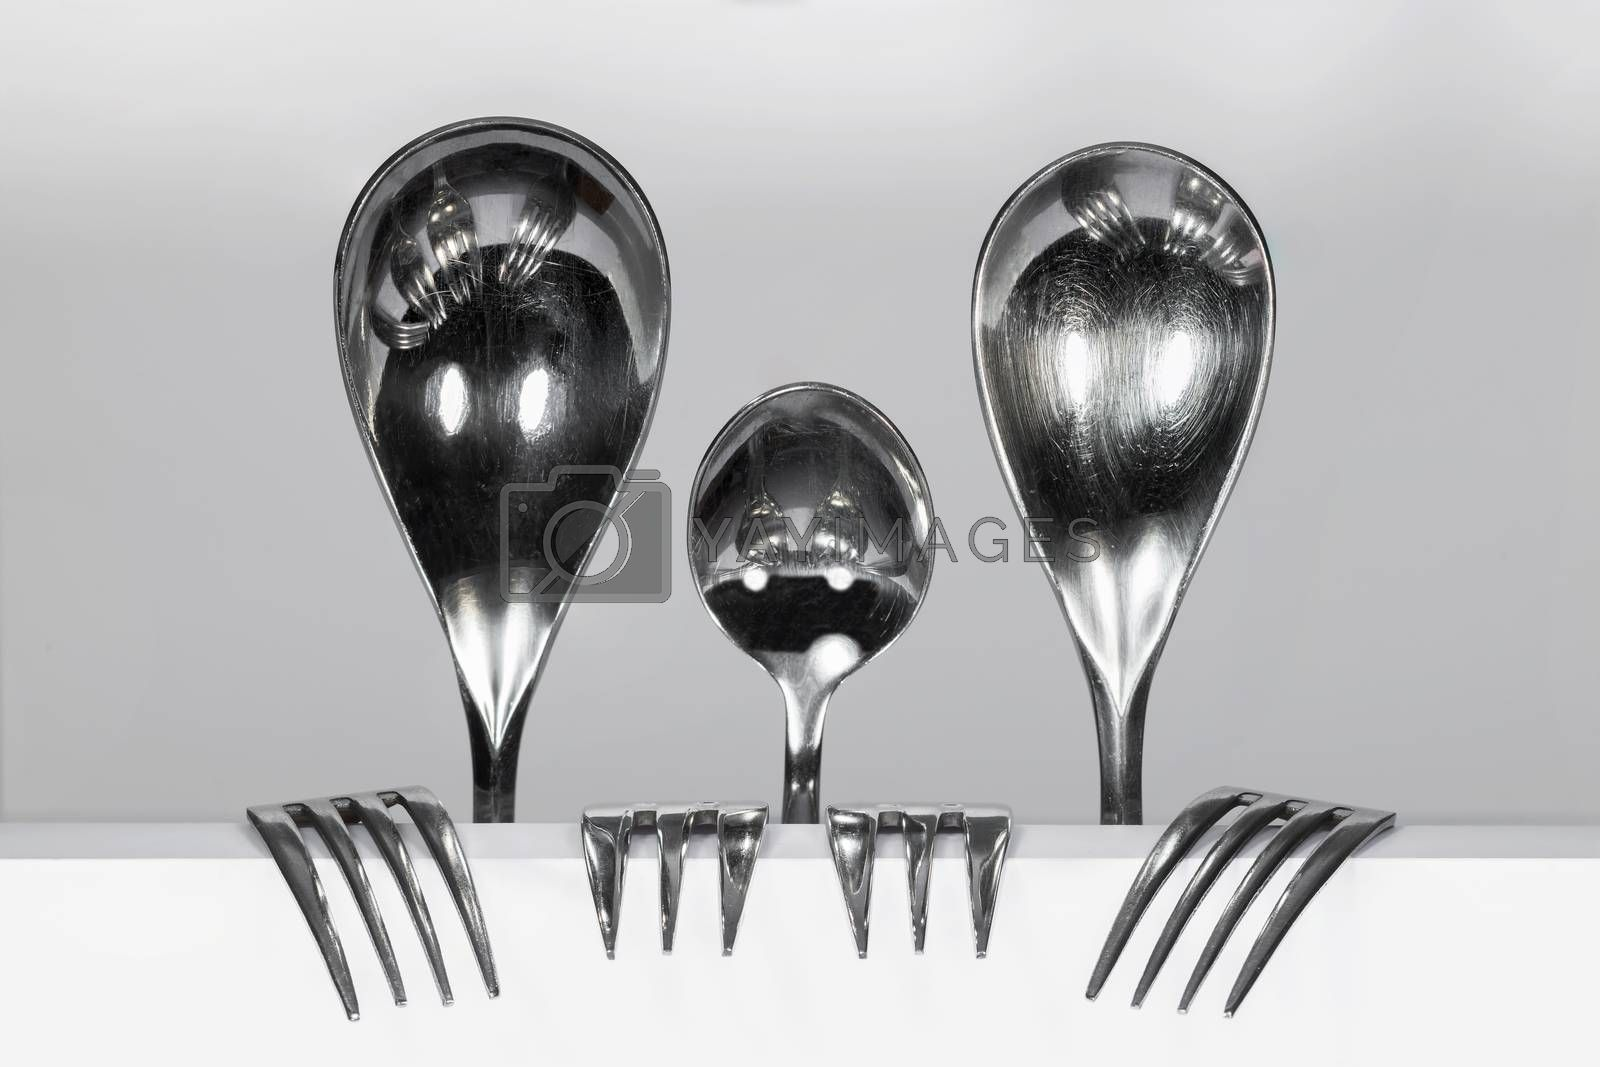 Cutlery Family of three spoons and four forks   by Tofotografie